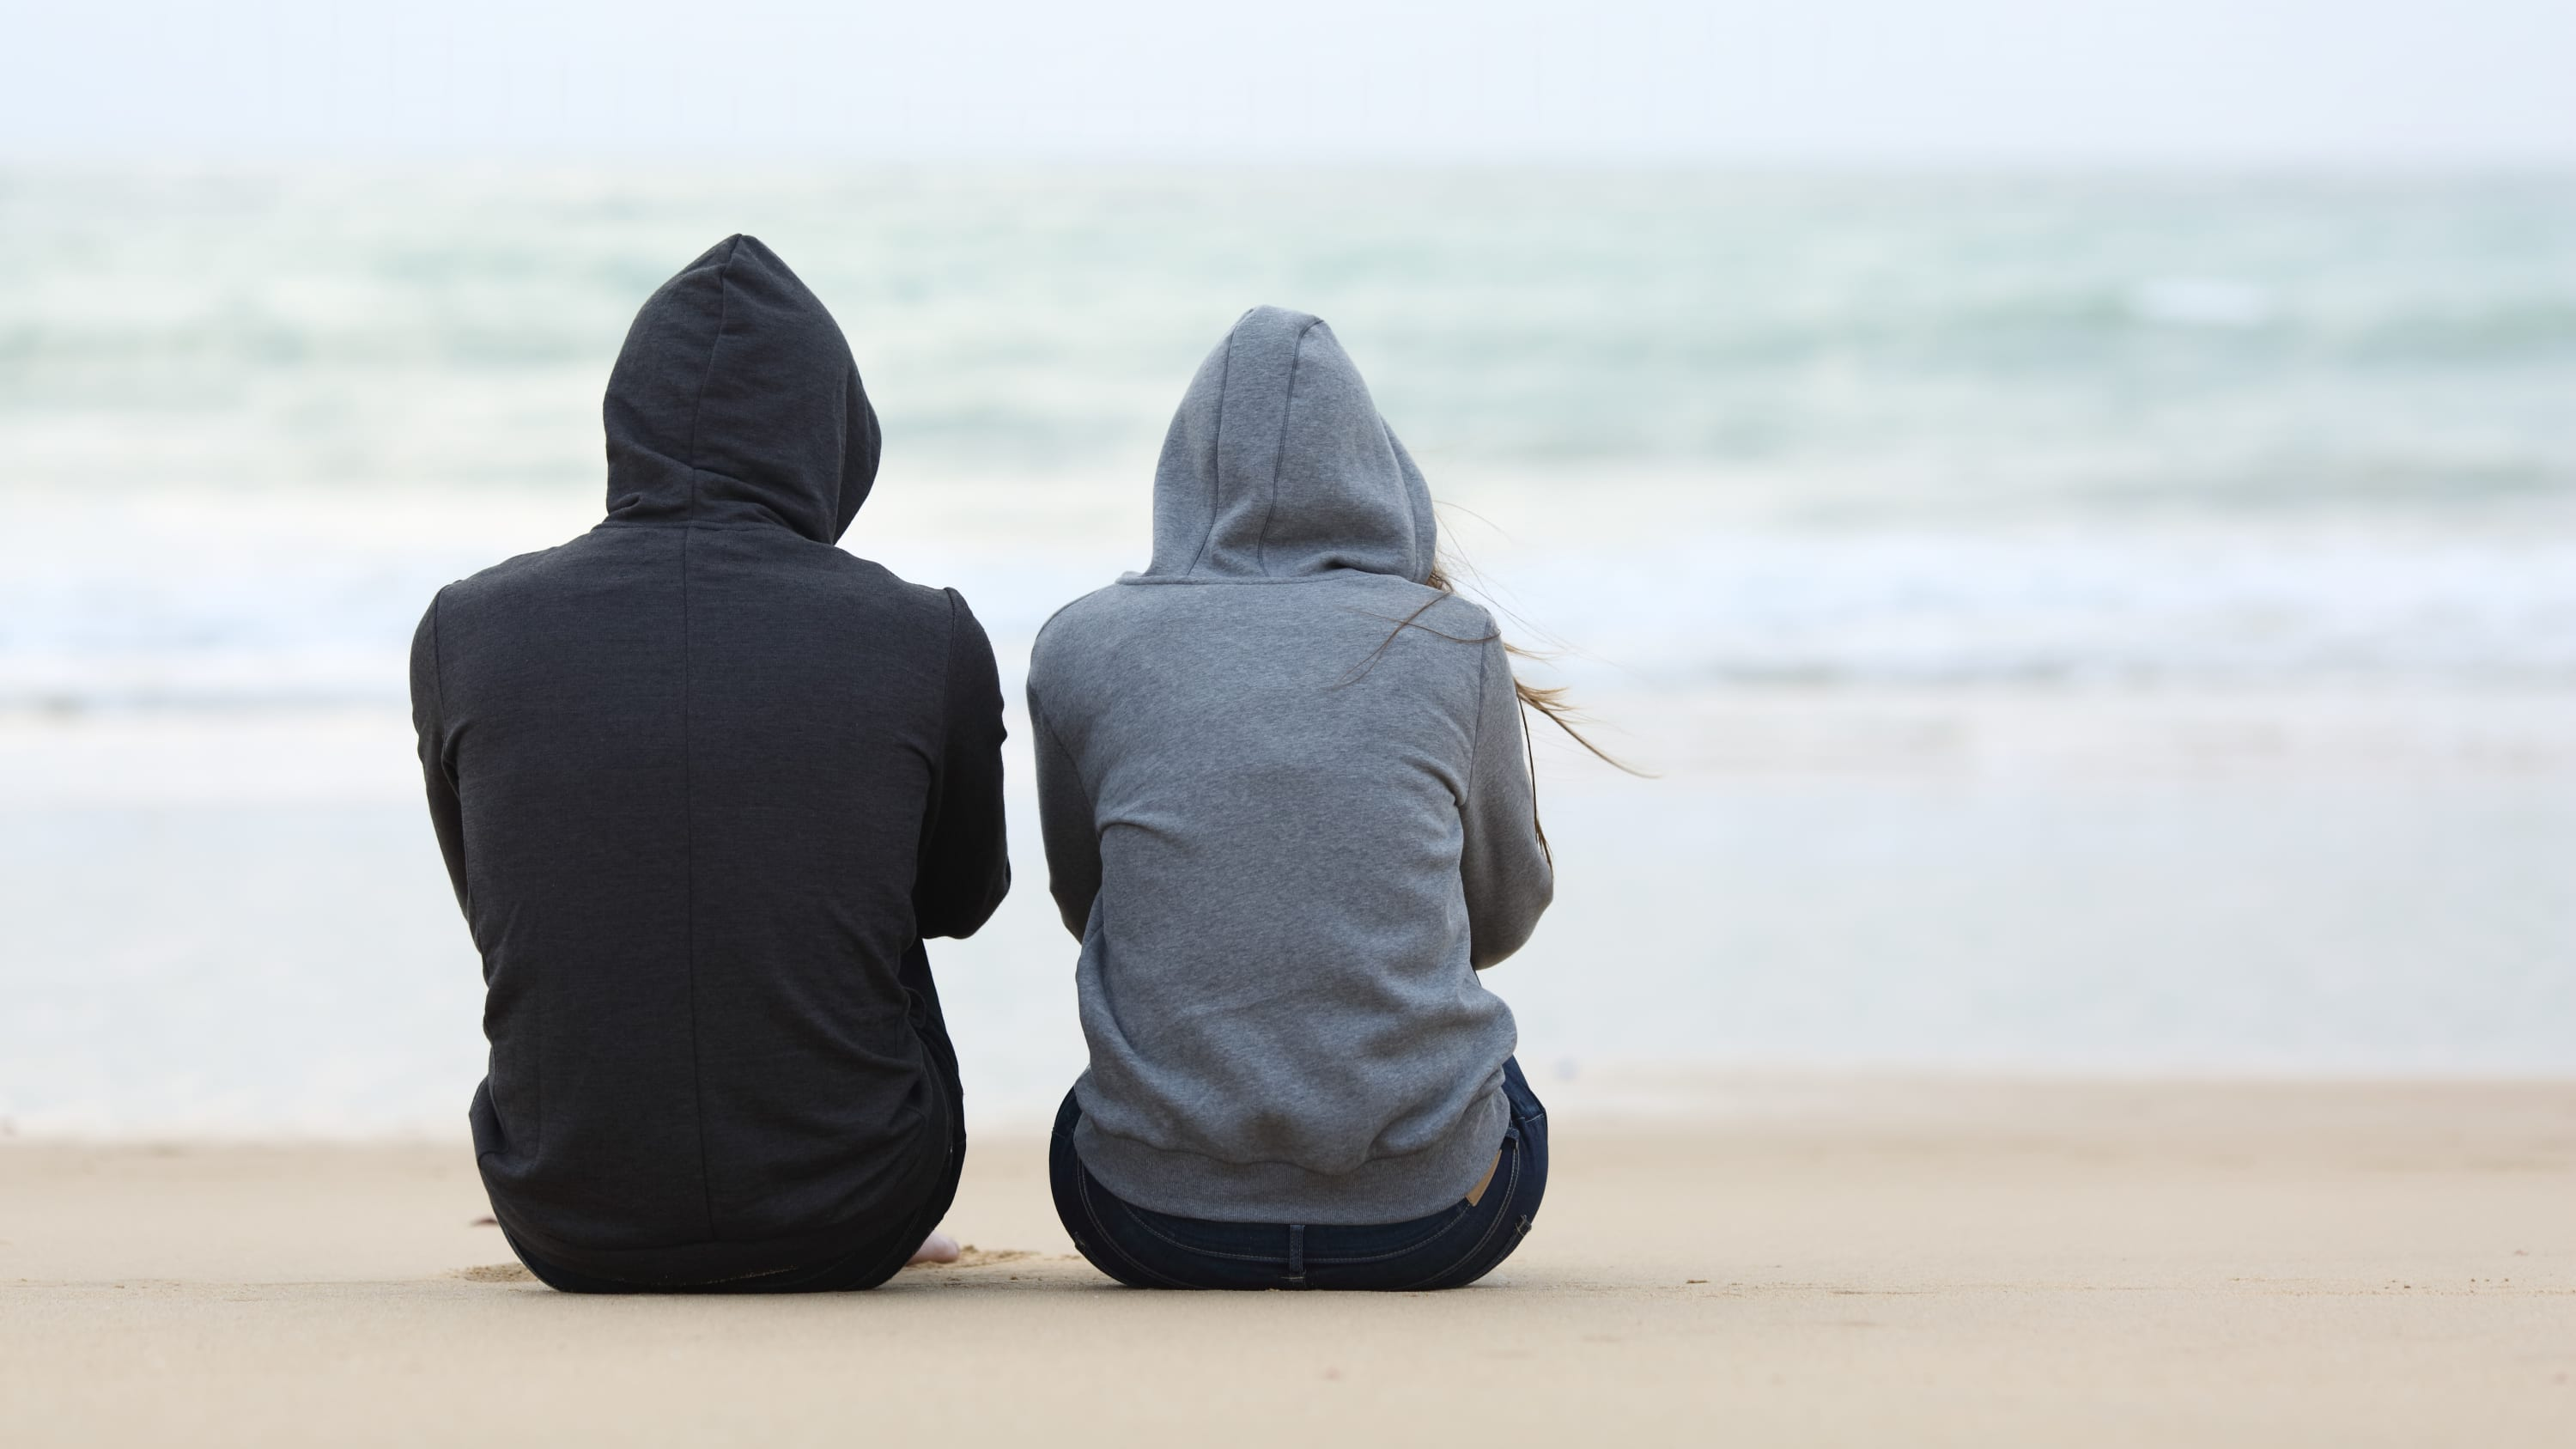 A man and a woman sit on a beach, possibly talking about herpes